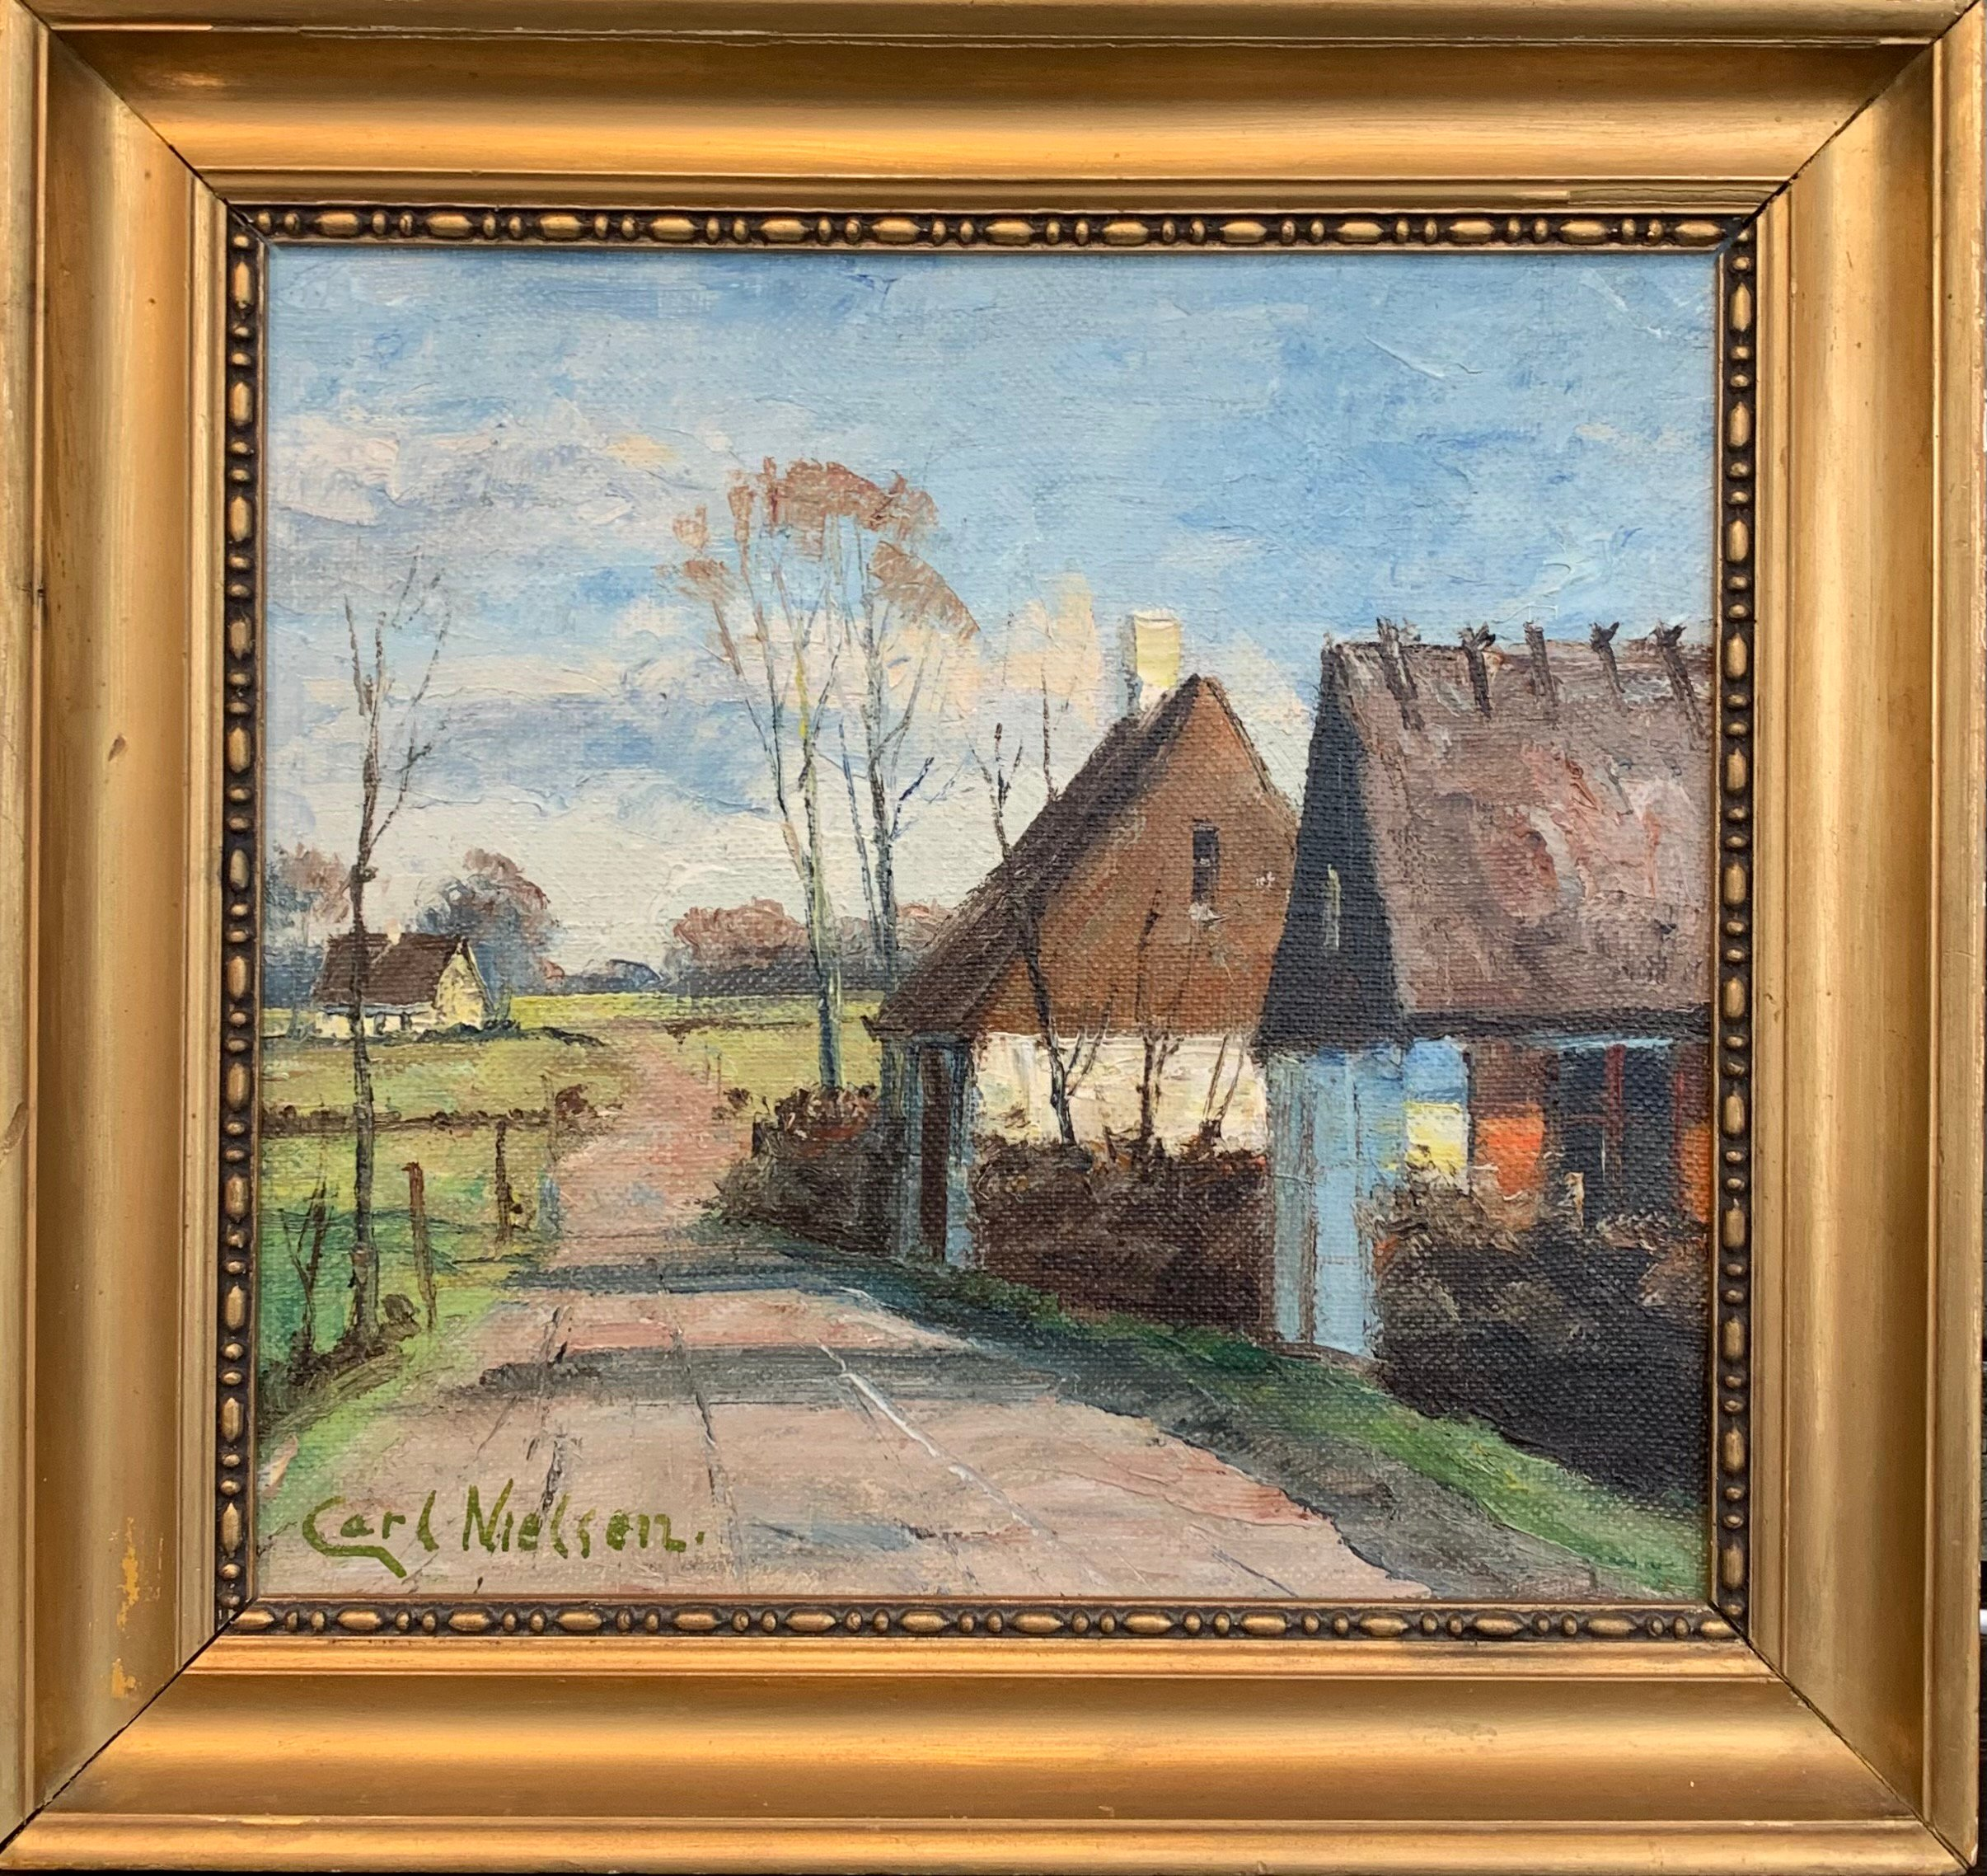 "Carl Nielsen, Untitled, Oil on panel, not dated, 15.5"" x 14"" Value  $100"